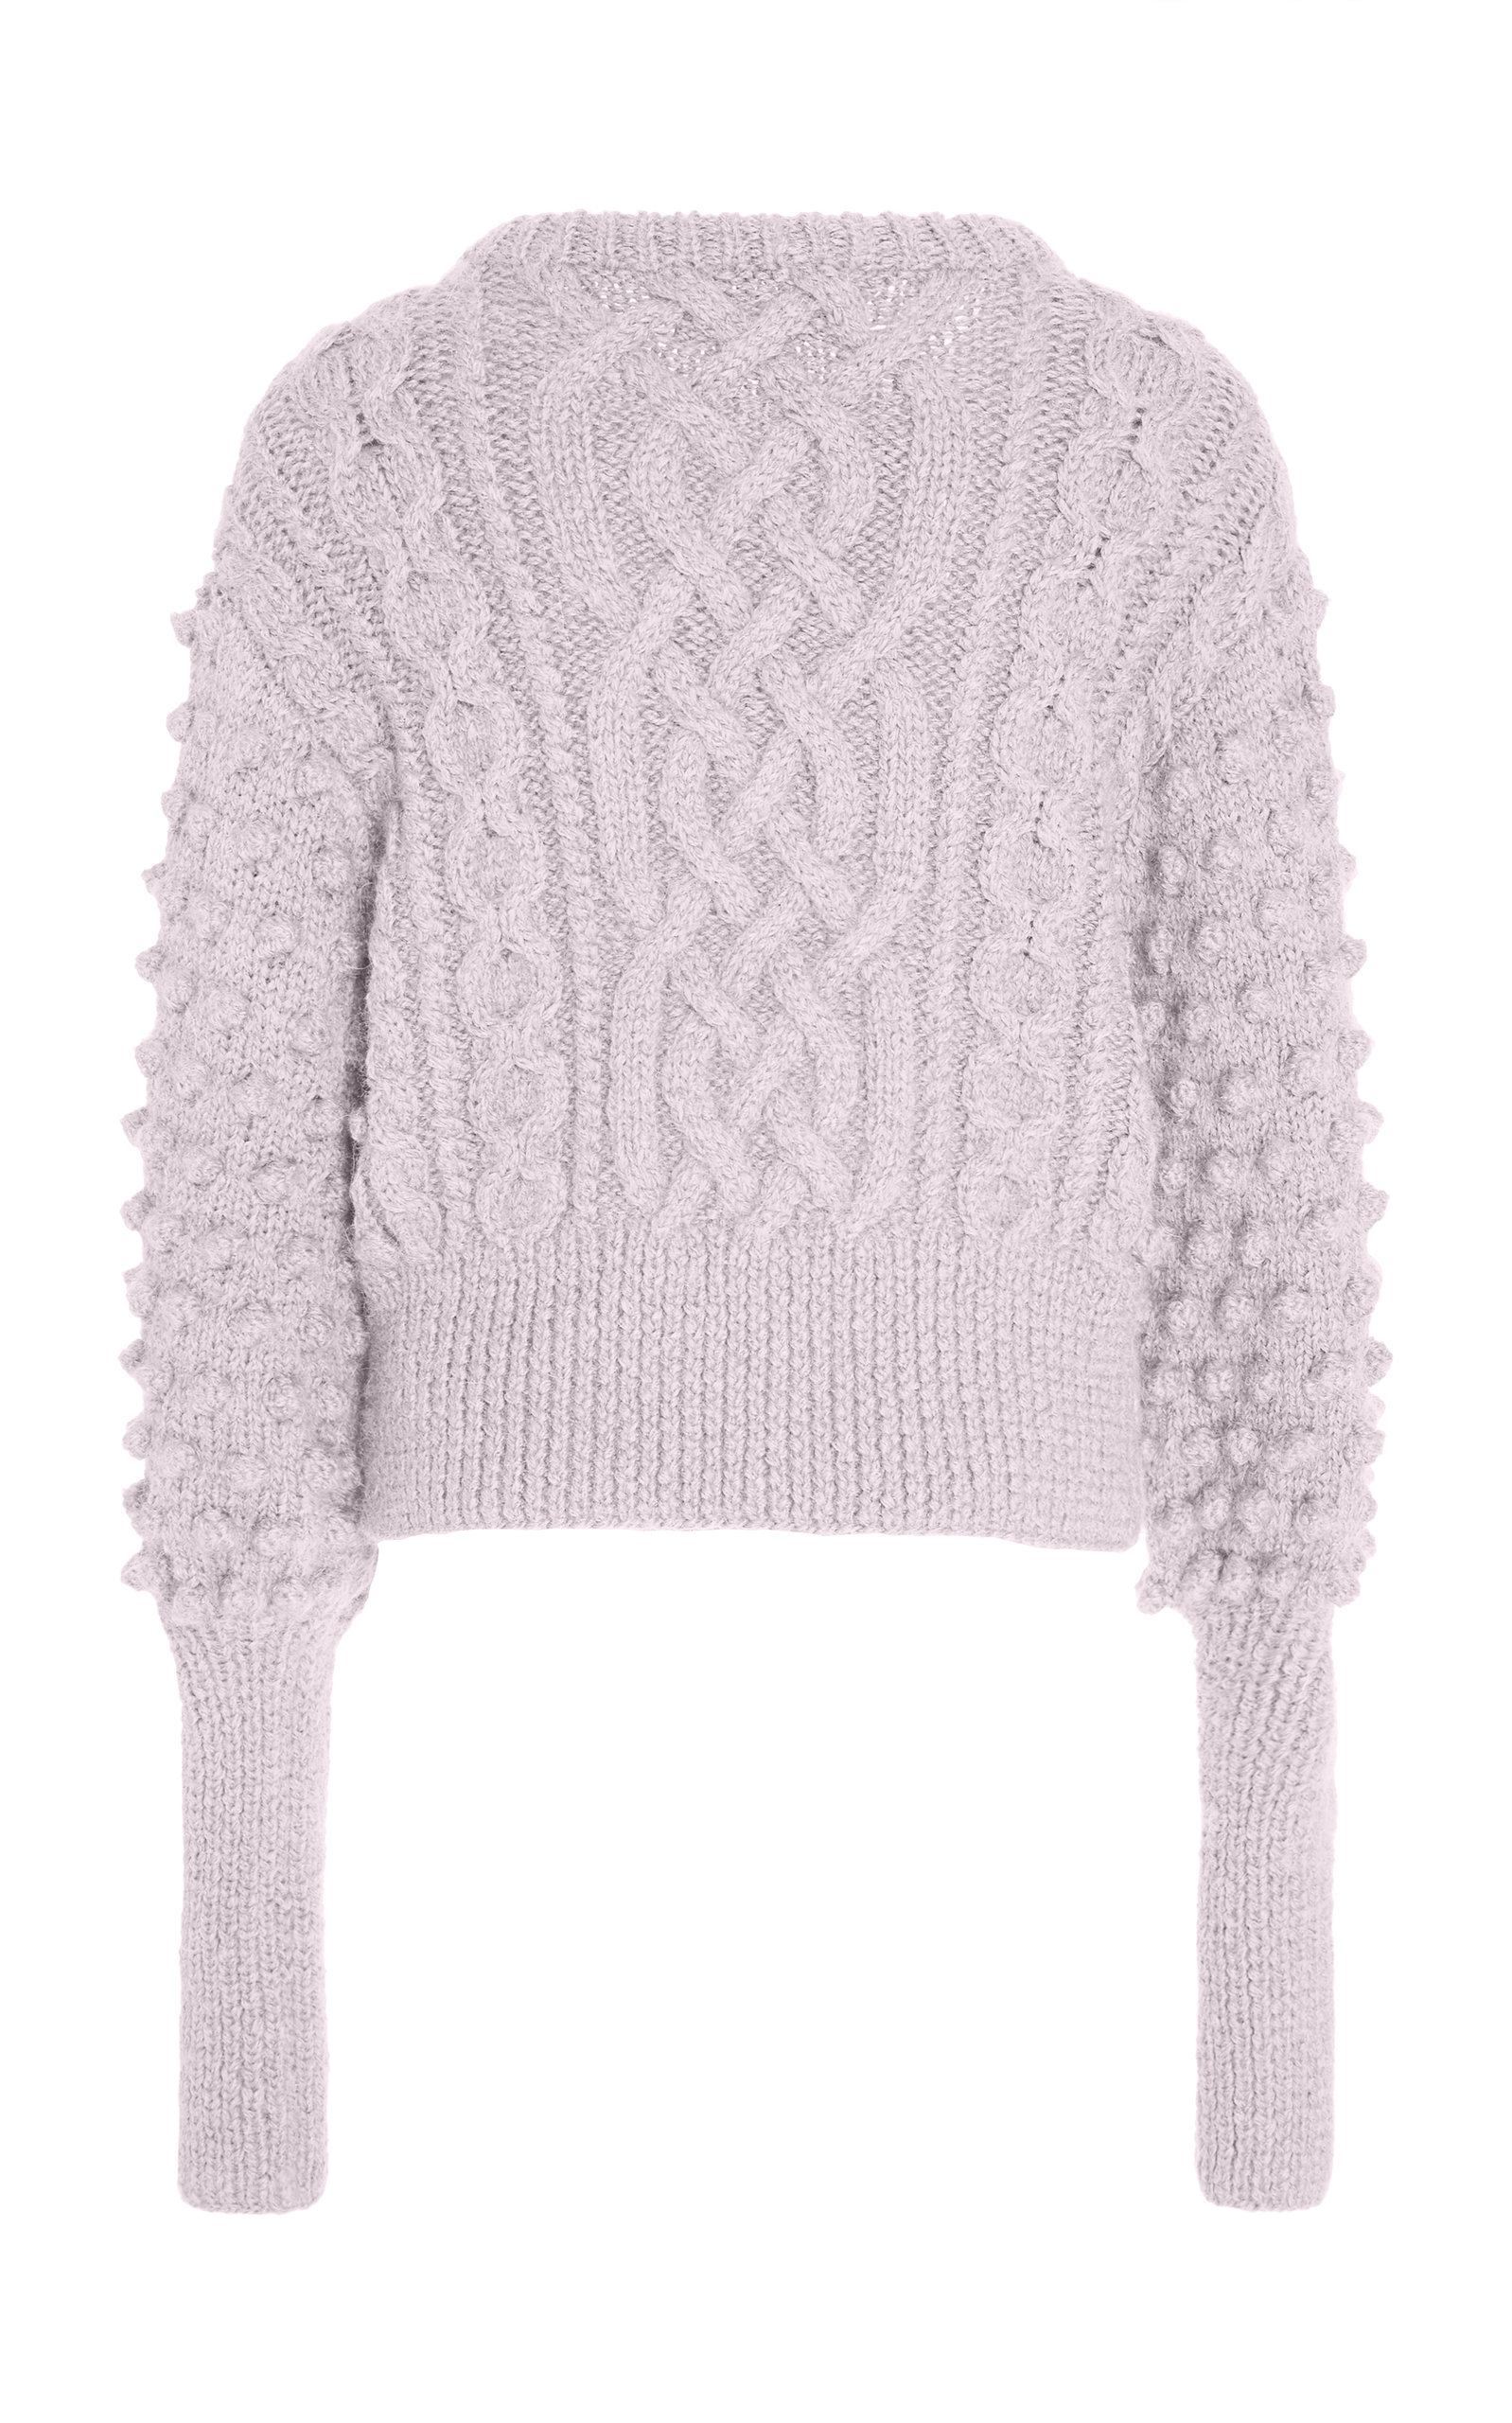 Lieve Handknit Cable Crew Sweater by Apiece Apart  f07b65b53